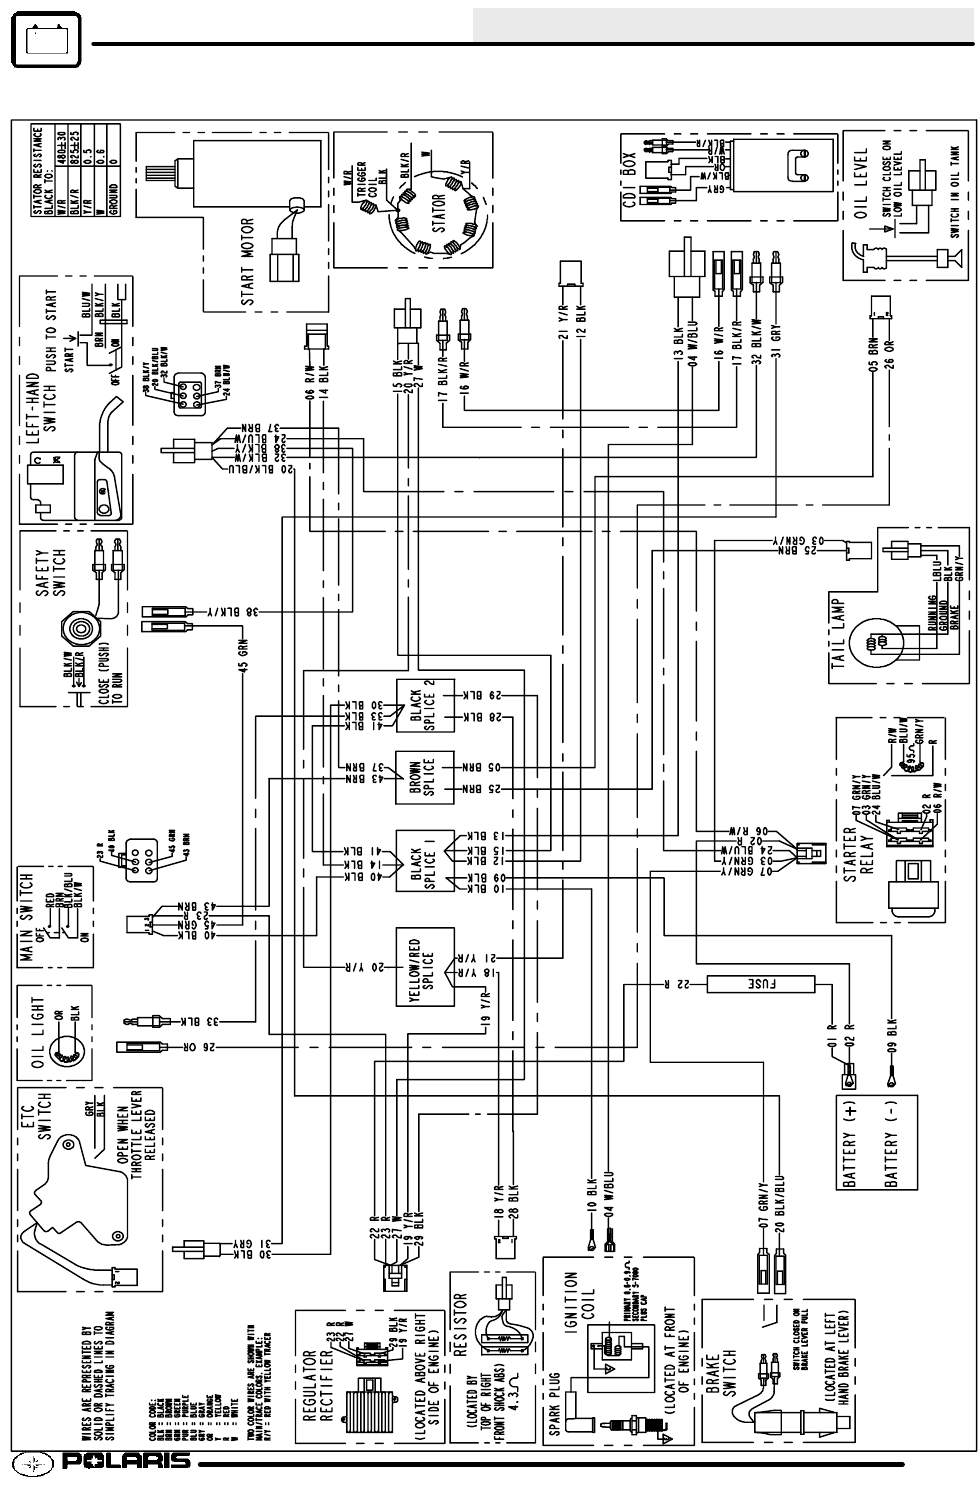 110 Cc Ignition Wiring Diagram Pdf Looking For Polaris Outlaw 50 Wiring Diagram